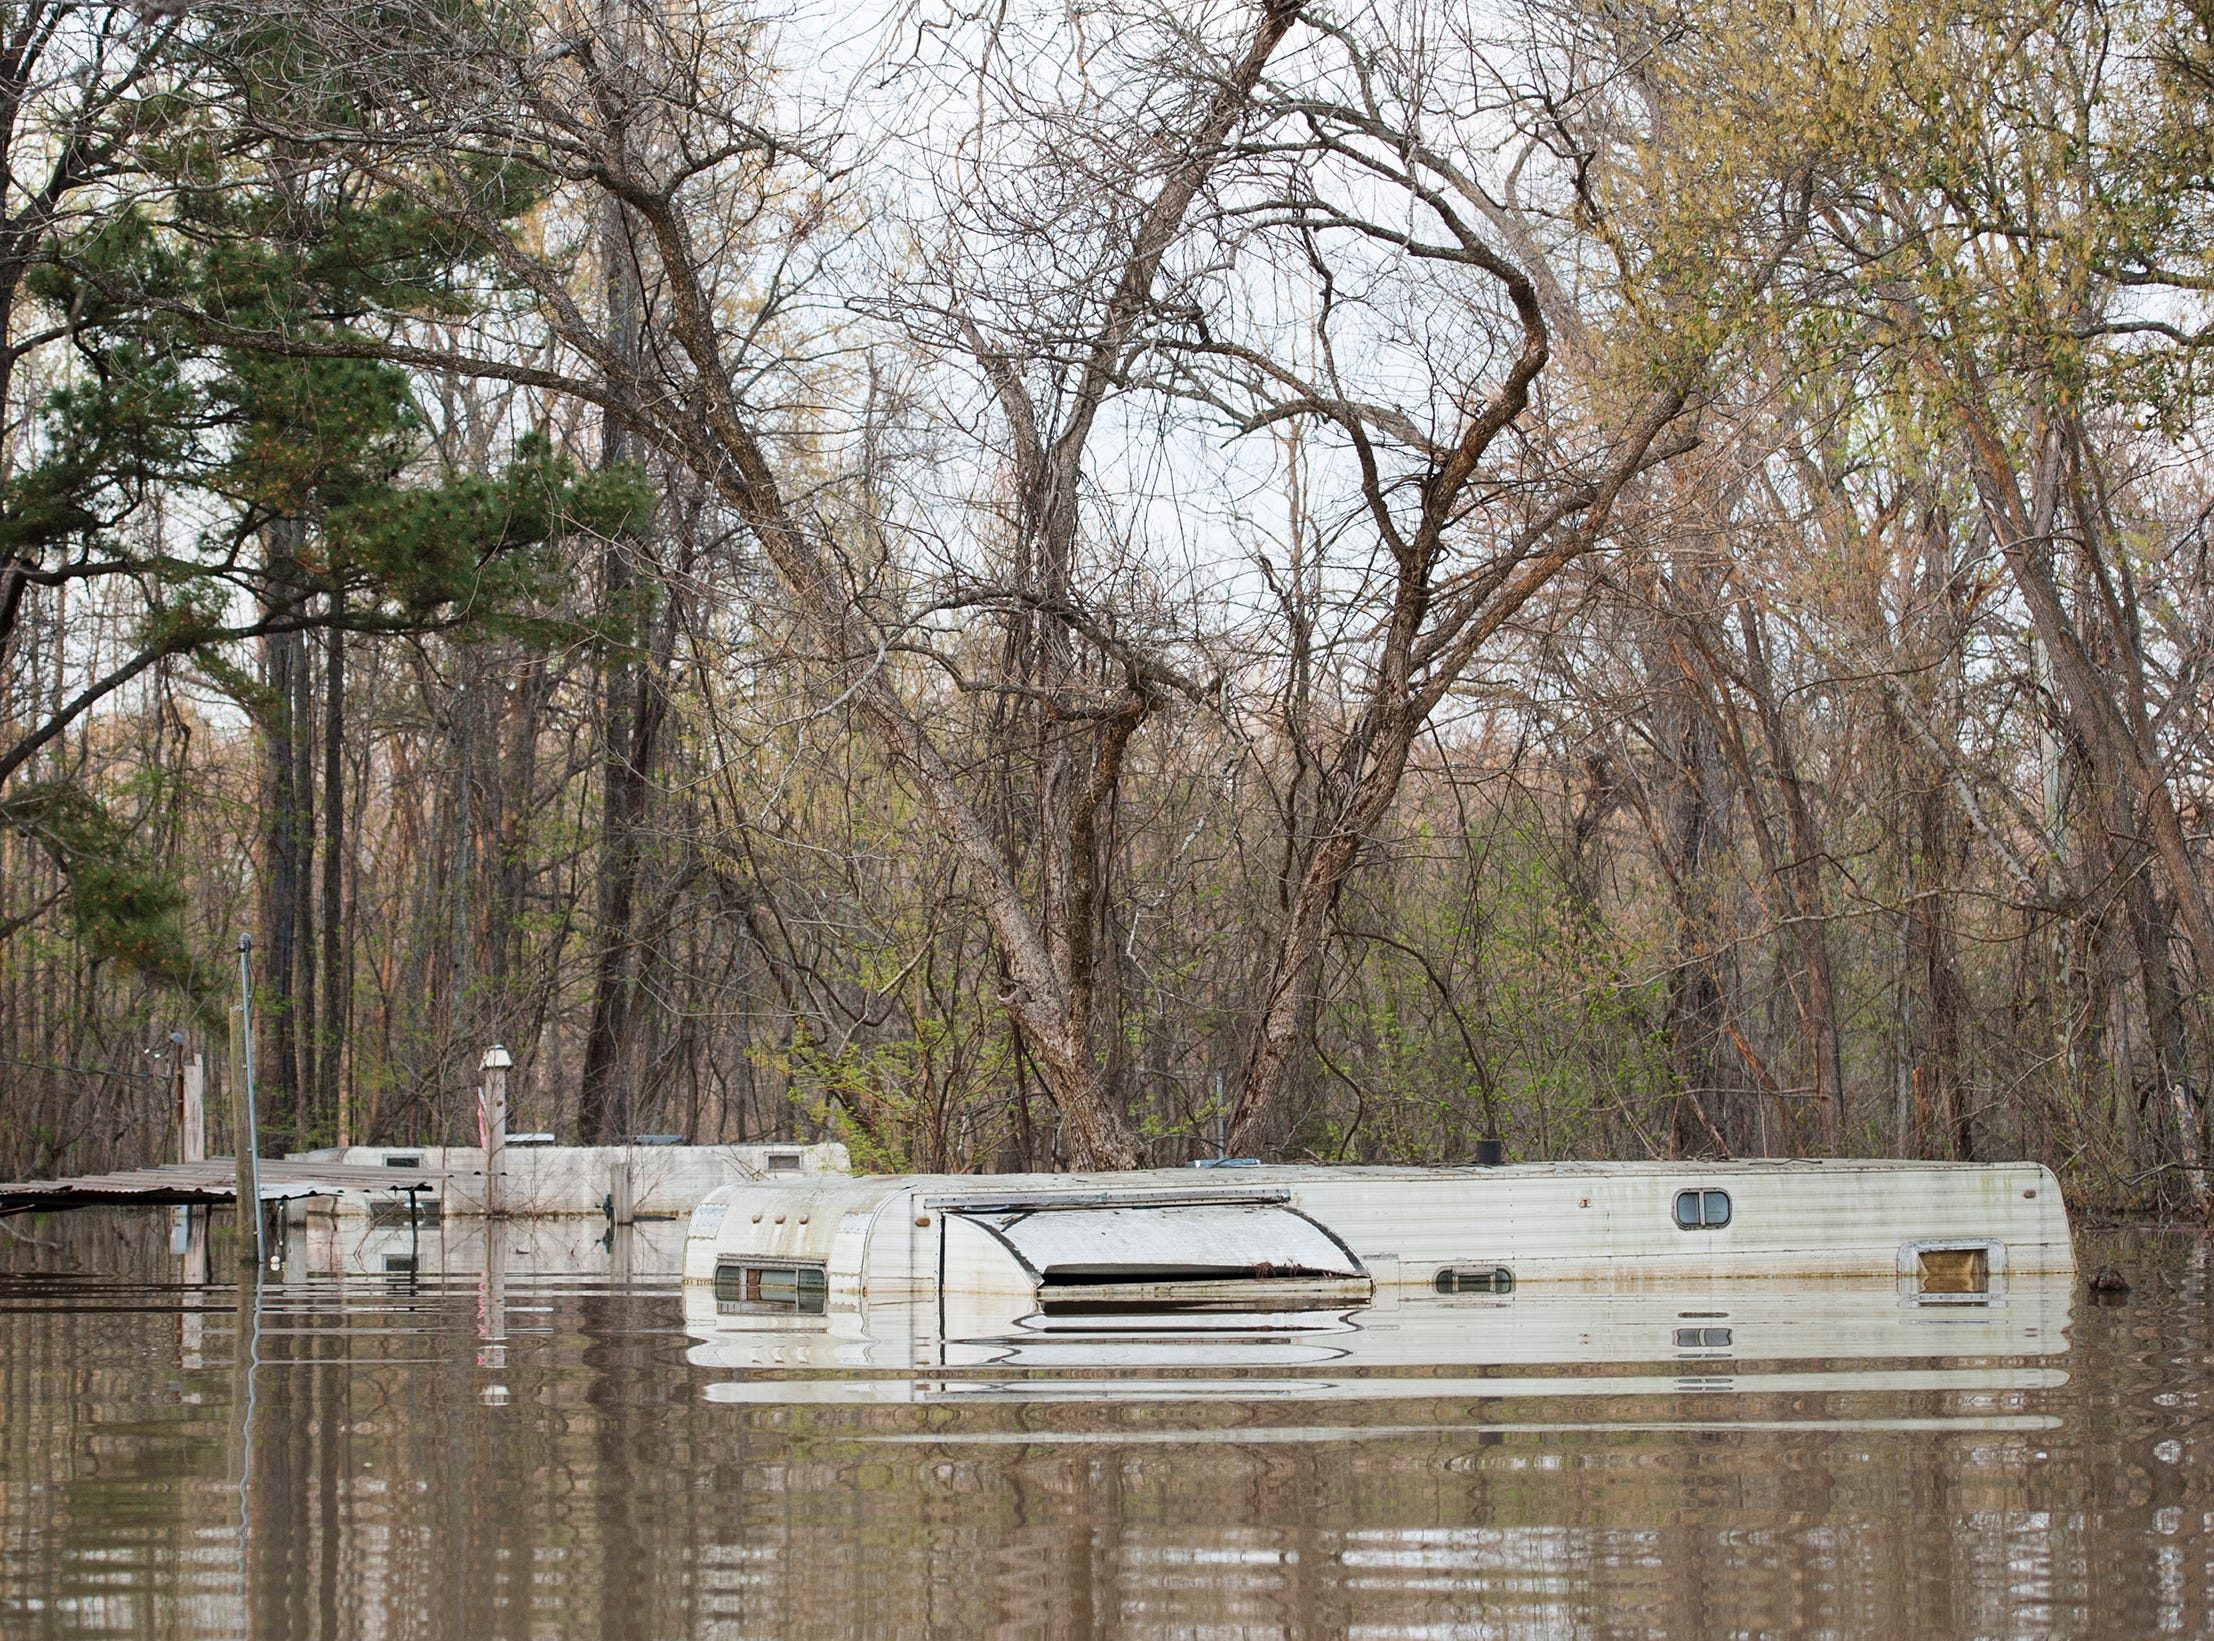 Almost surely a total loss, flood waters of the Yazoo River nearly reach to top of campers in Chickasaw in Vicksburg, March 19, 2019.